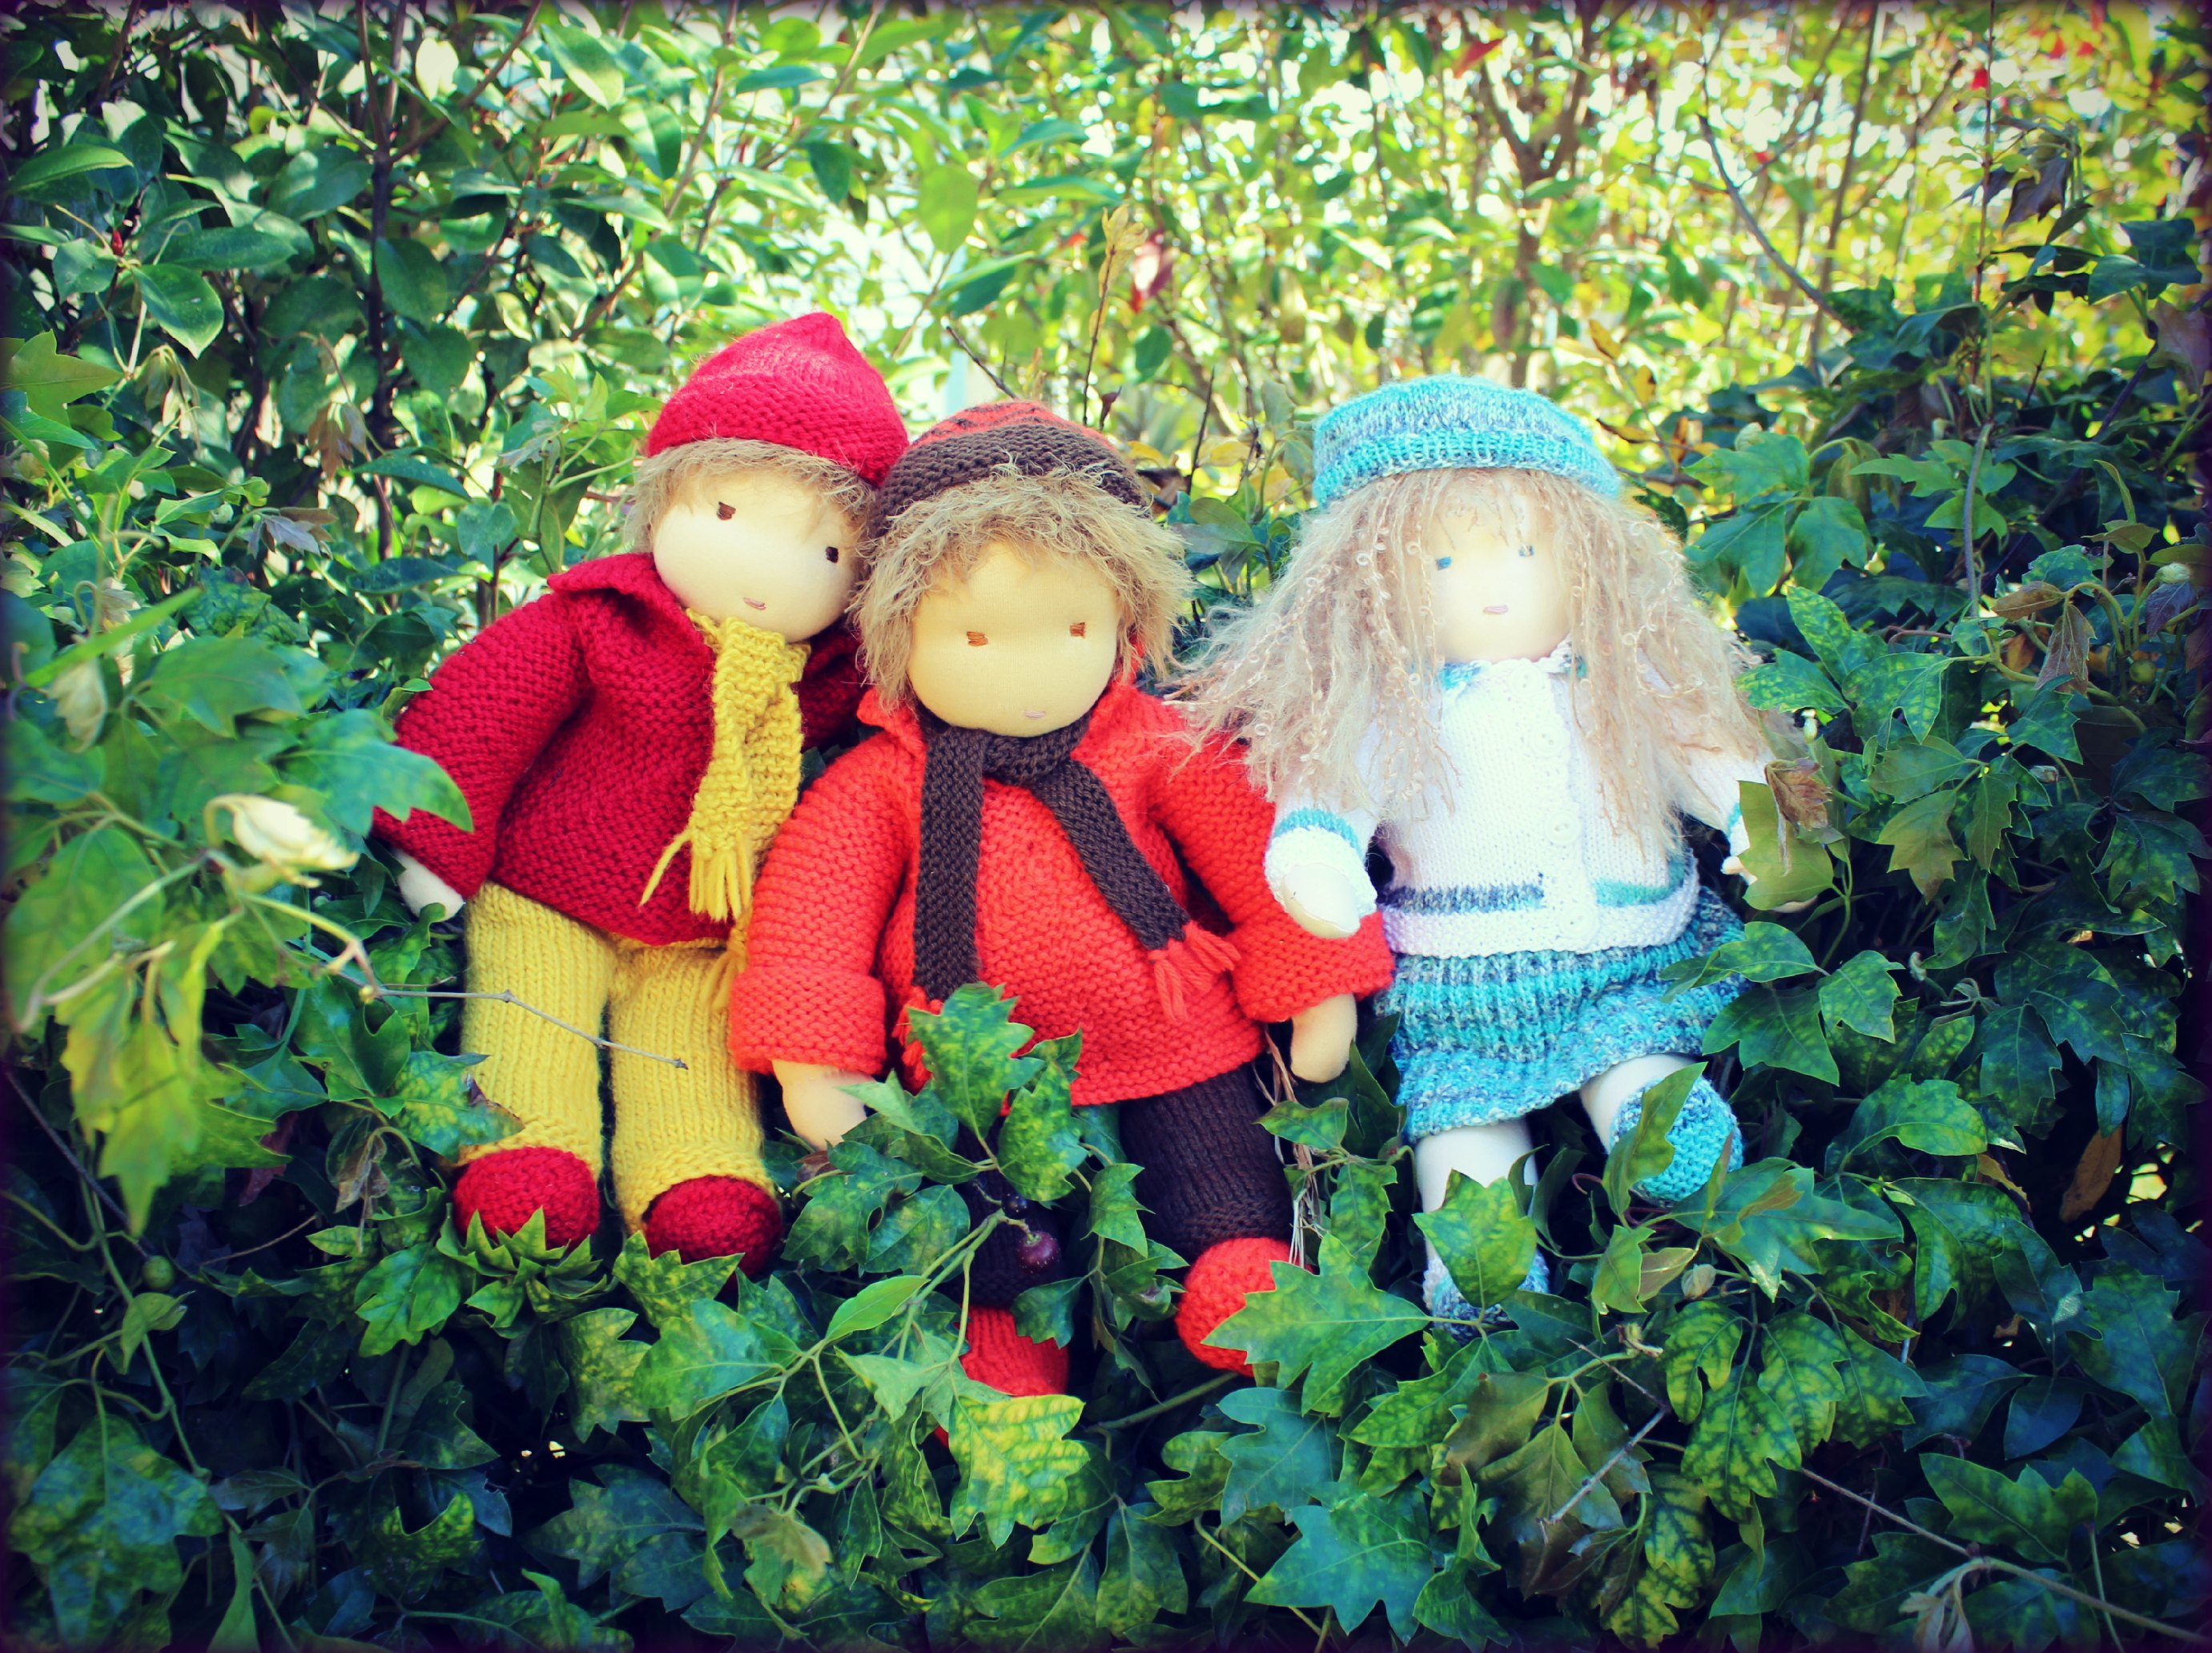 121219 Christine Newell's 3 16 inch Waldorf dolls sitting on a berry fence